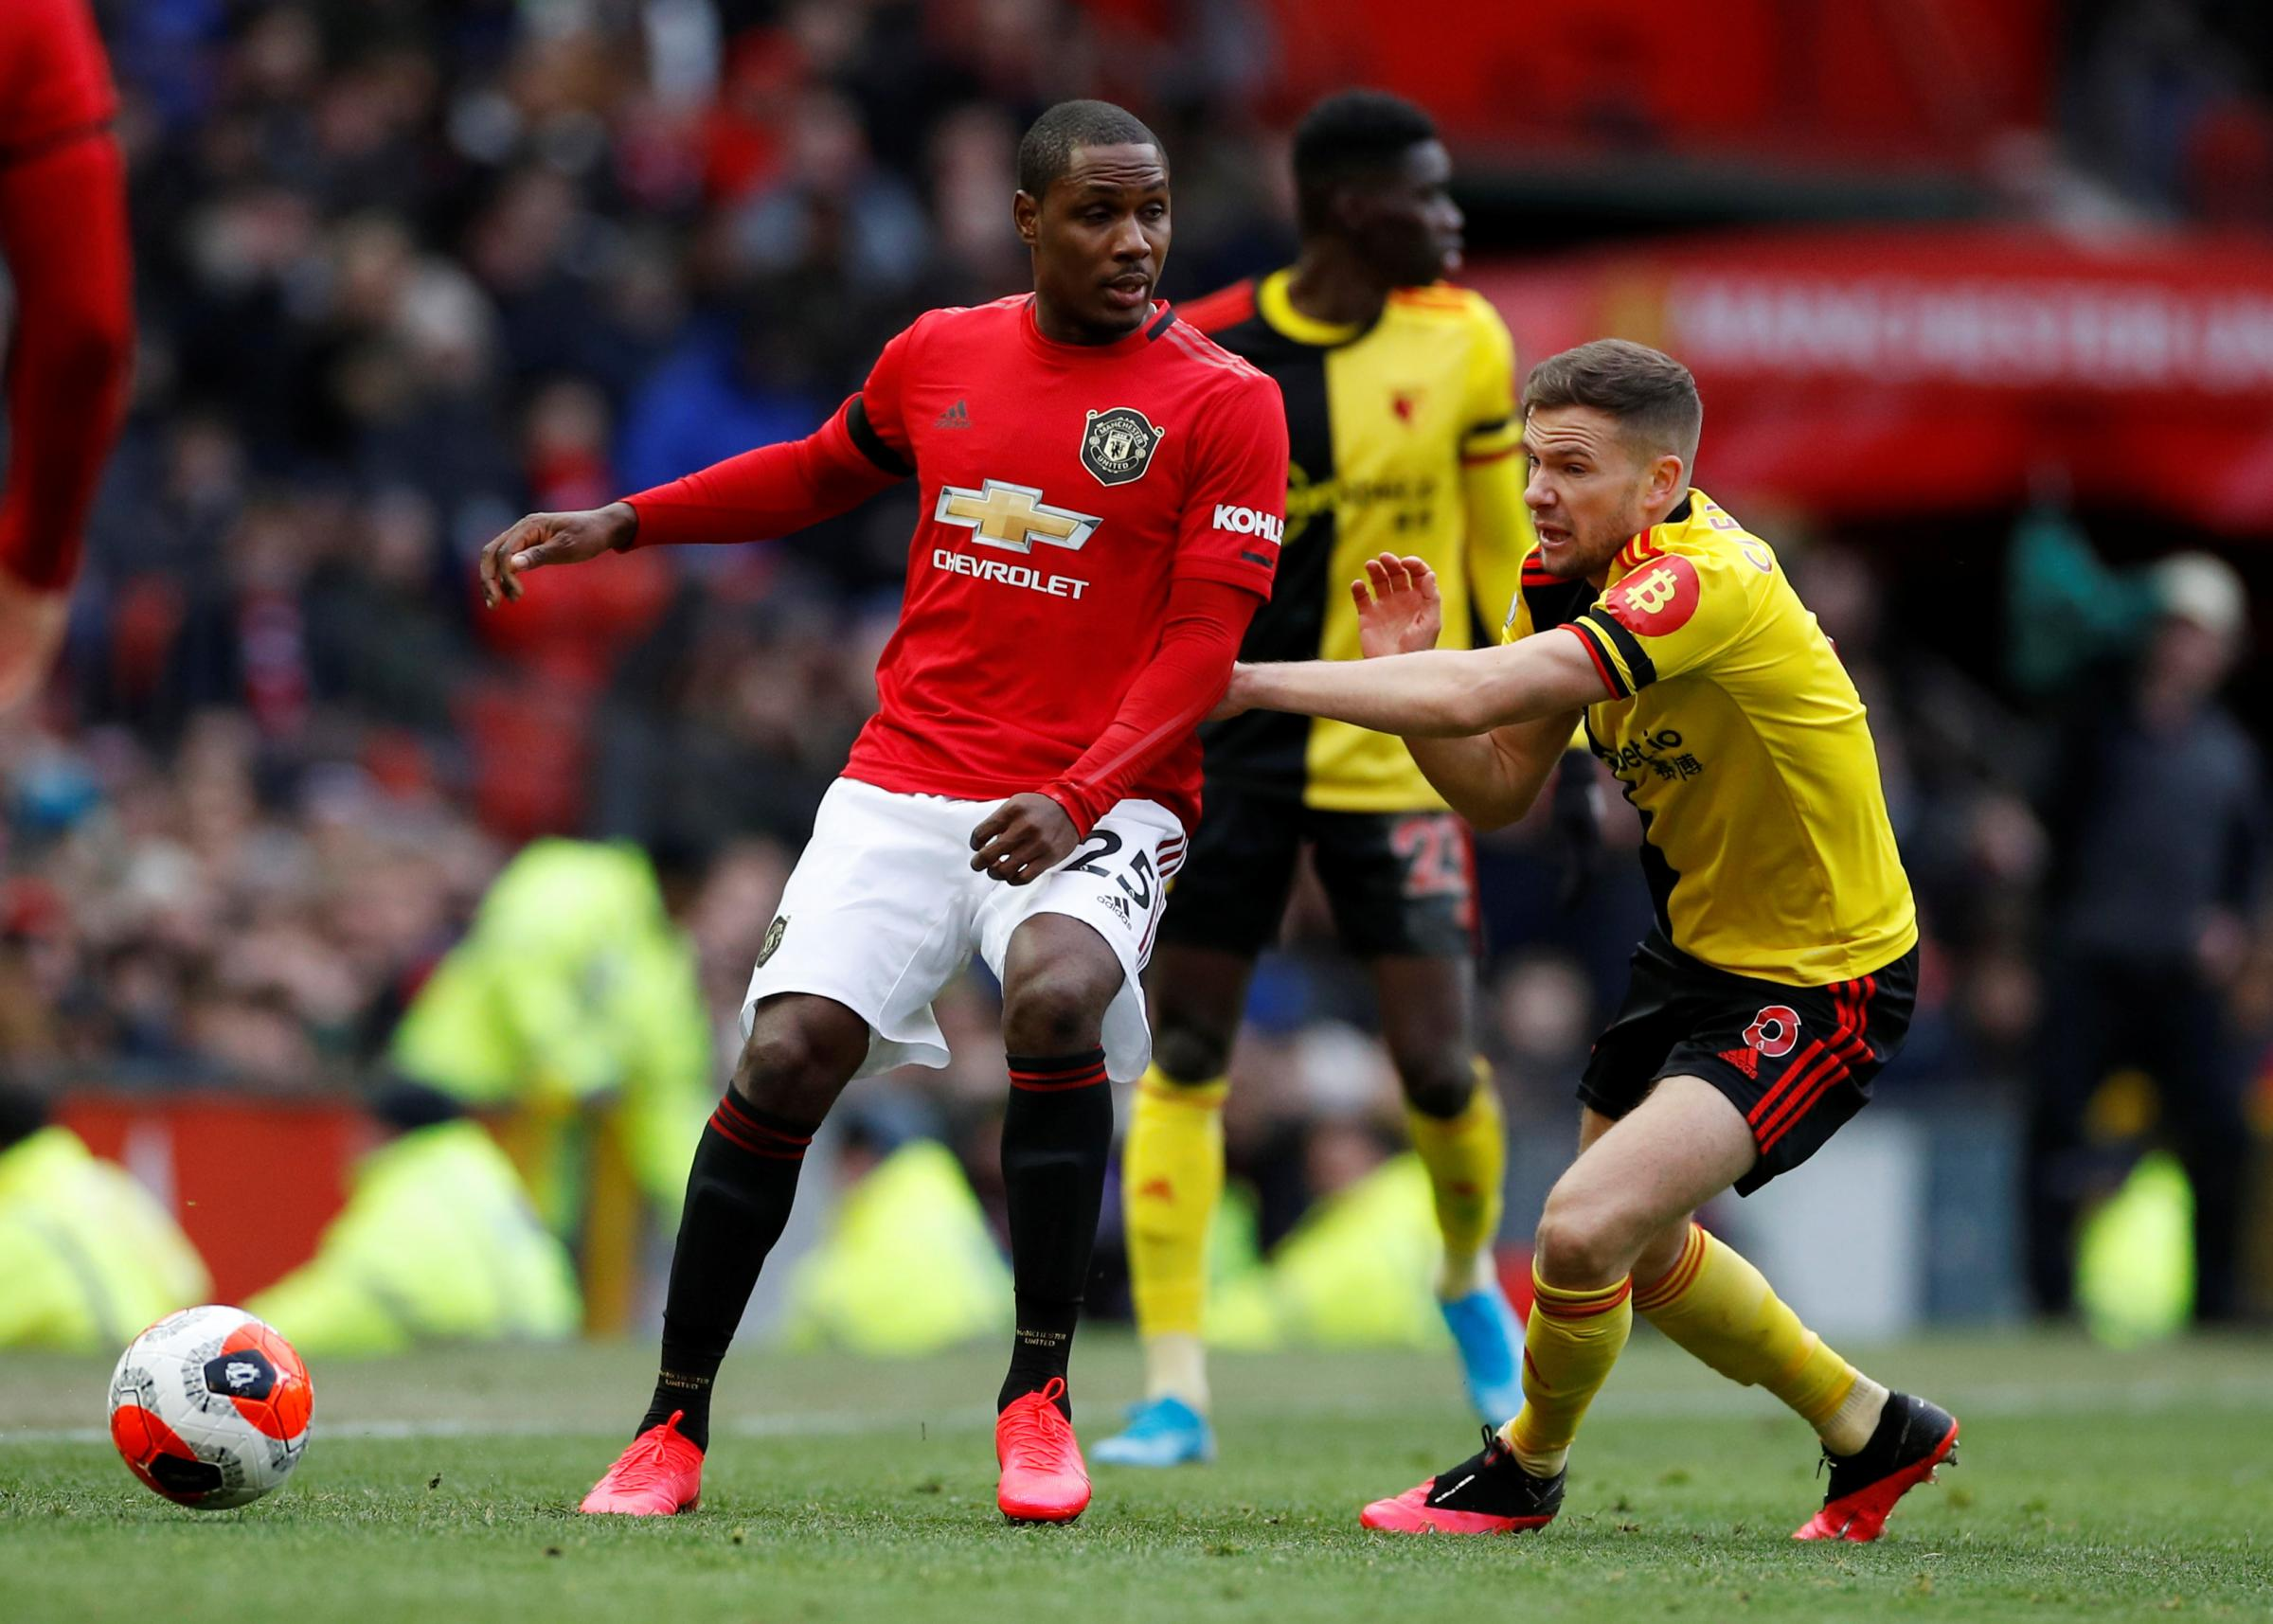 Former Watford striker Odion Ighalo staying at Manchester United